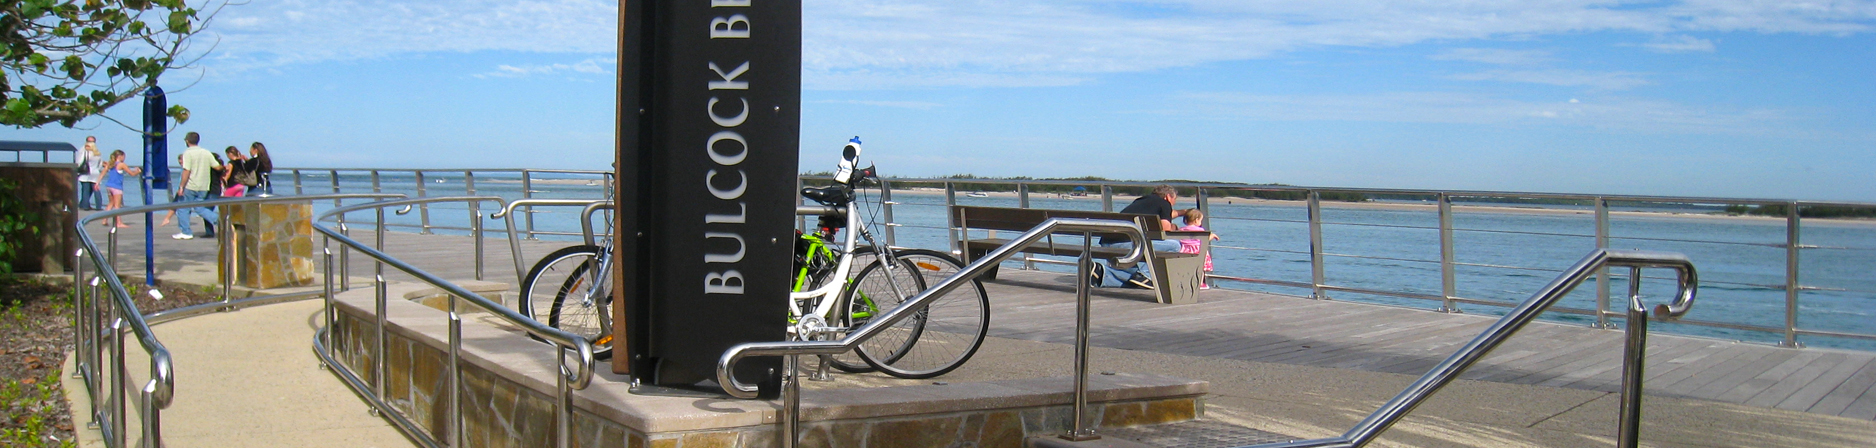 Boardwalk overlooking the opal coloured water with the Bulcock Beach sign and parked bikes in the foreground